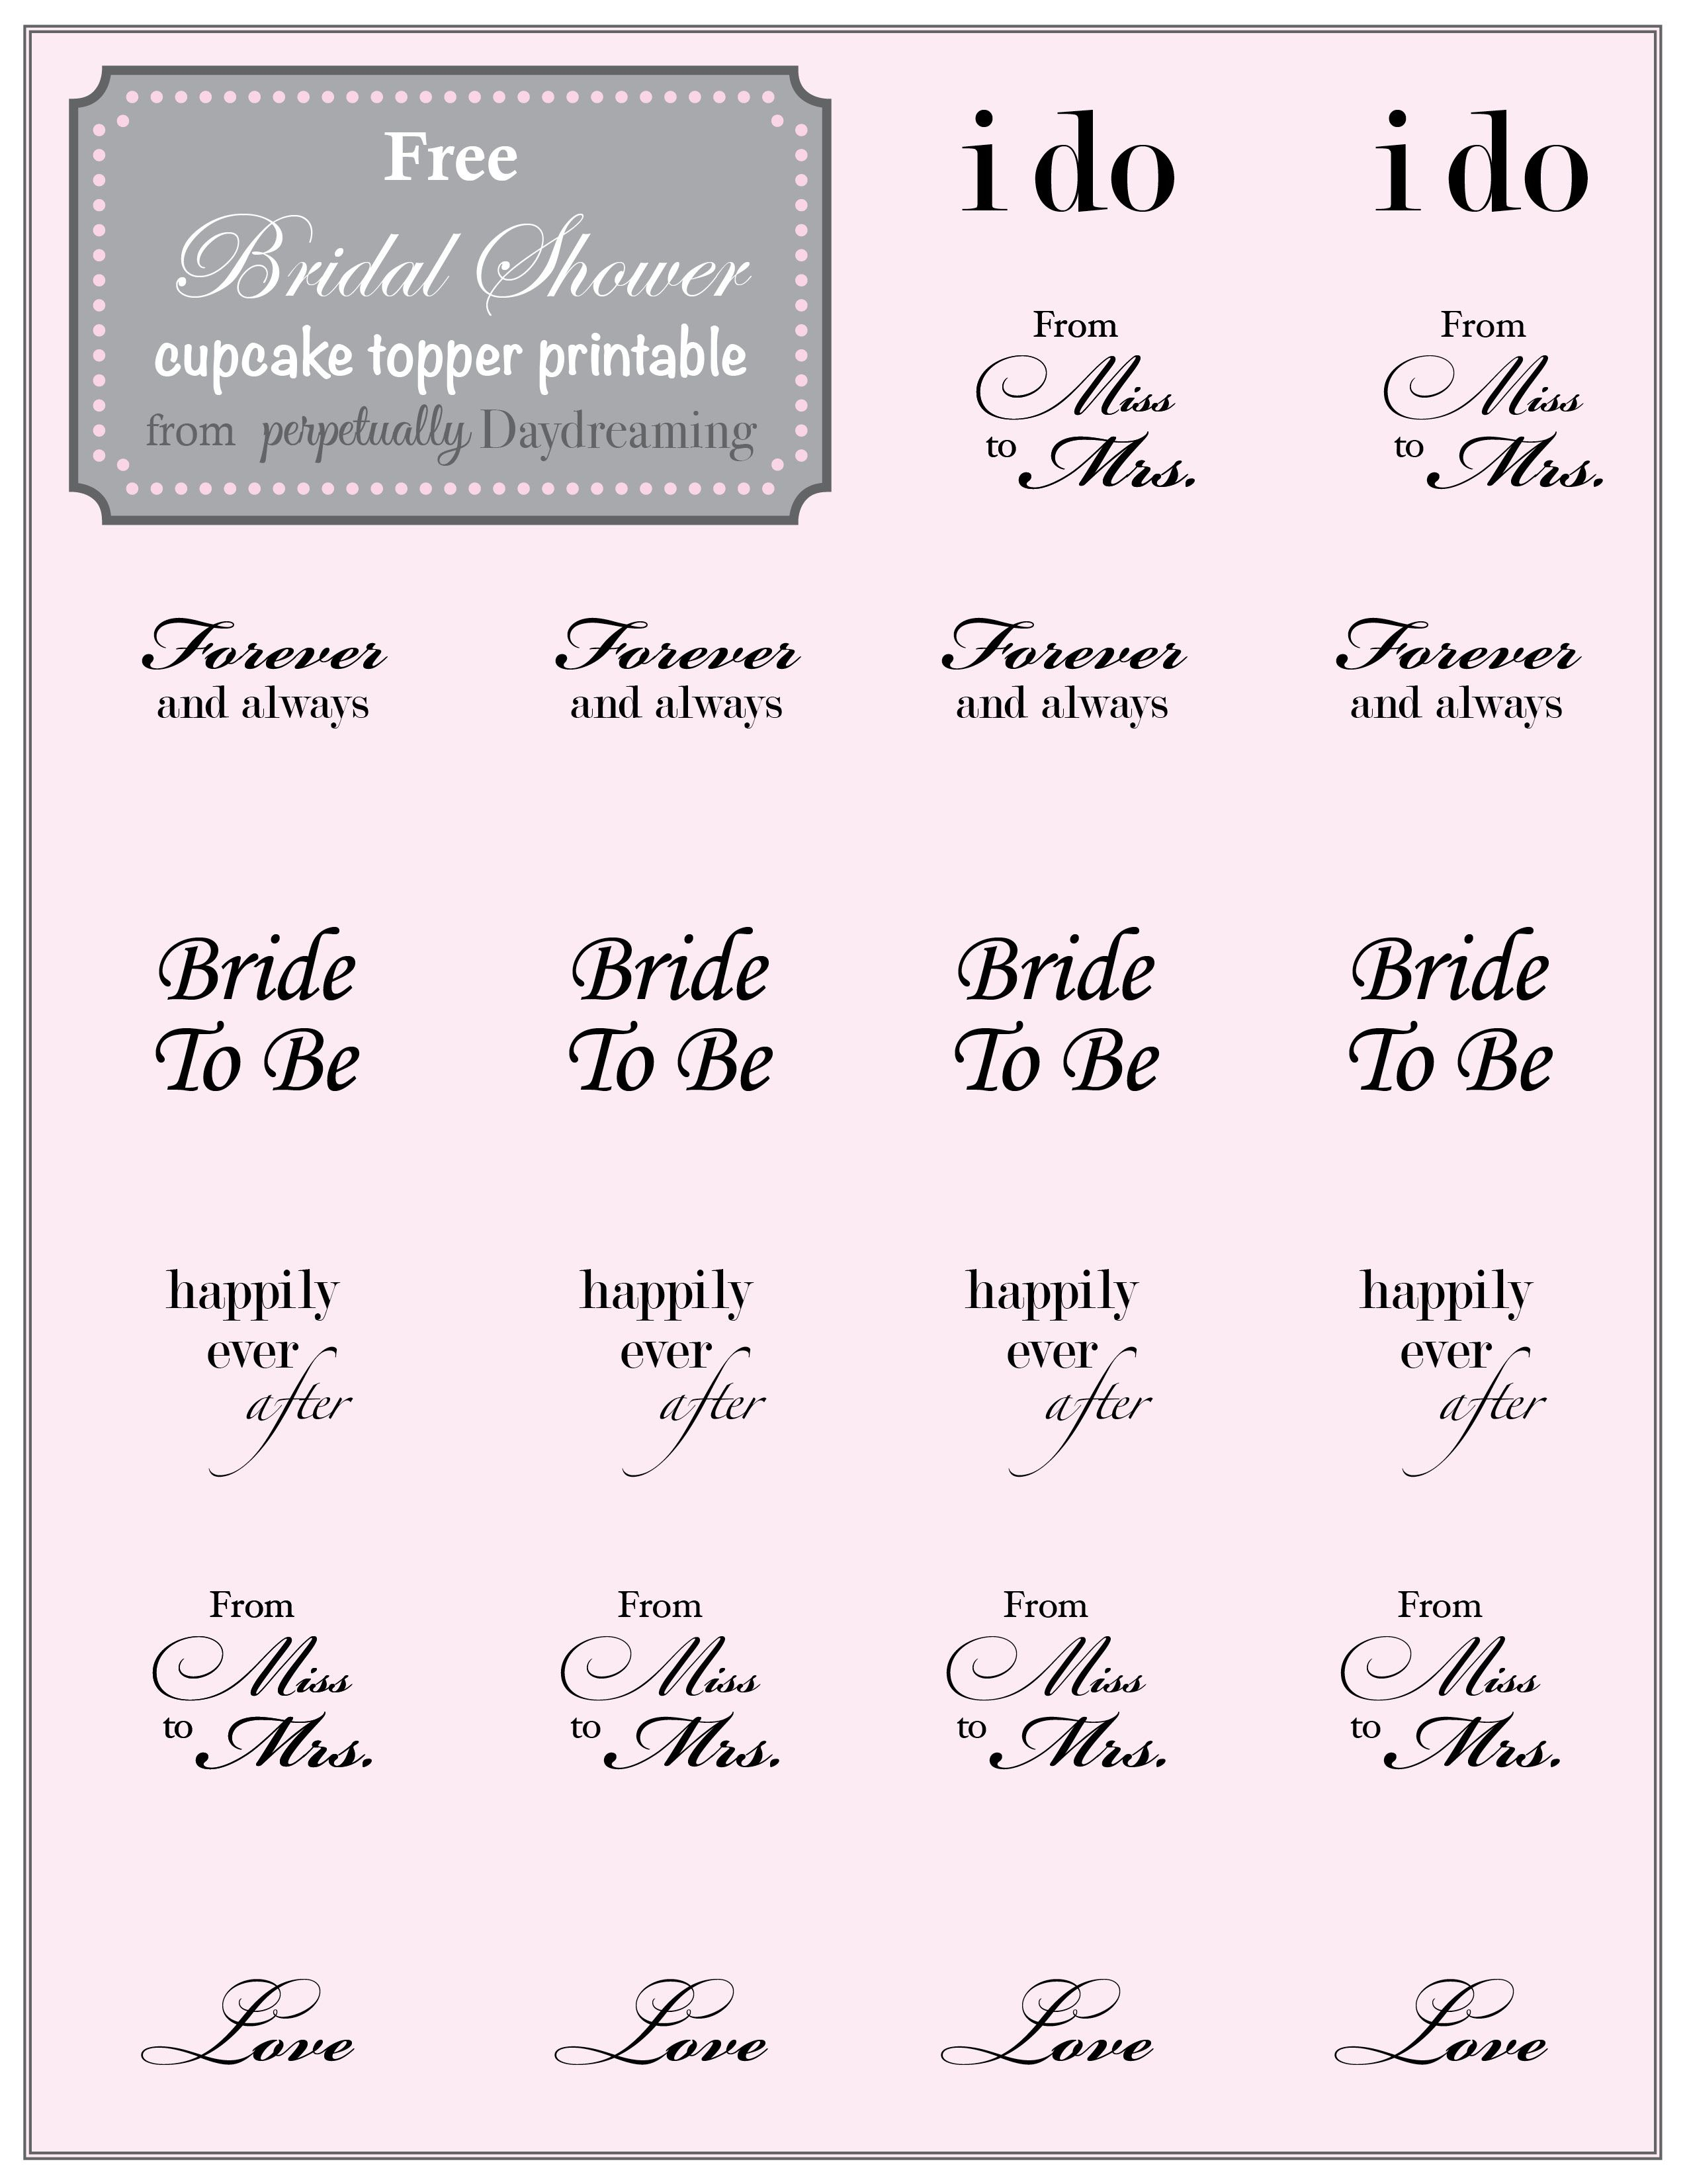 Country Bridal Shower Cupcake Topper {Free} Printable | Perpetually - Free Printable Cupcake Toppers Bridal Shower